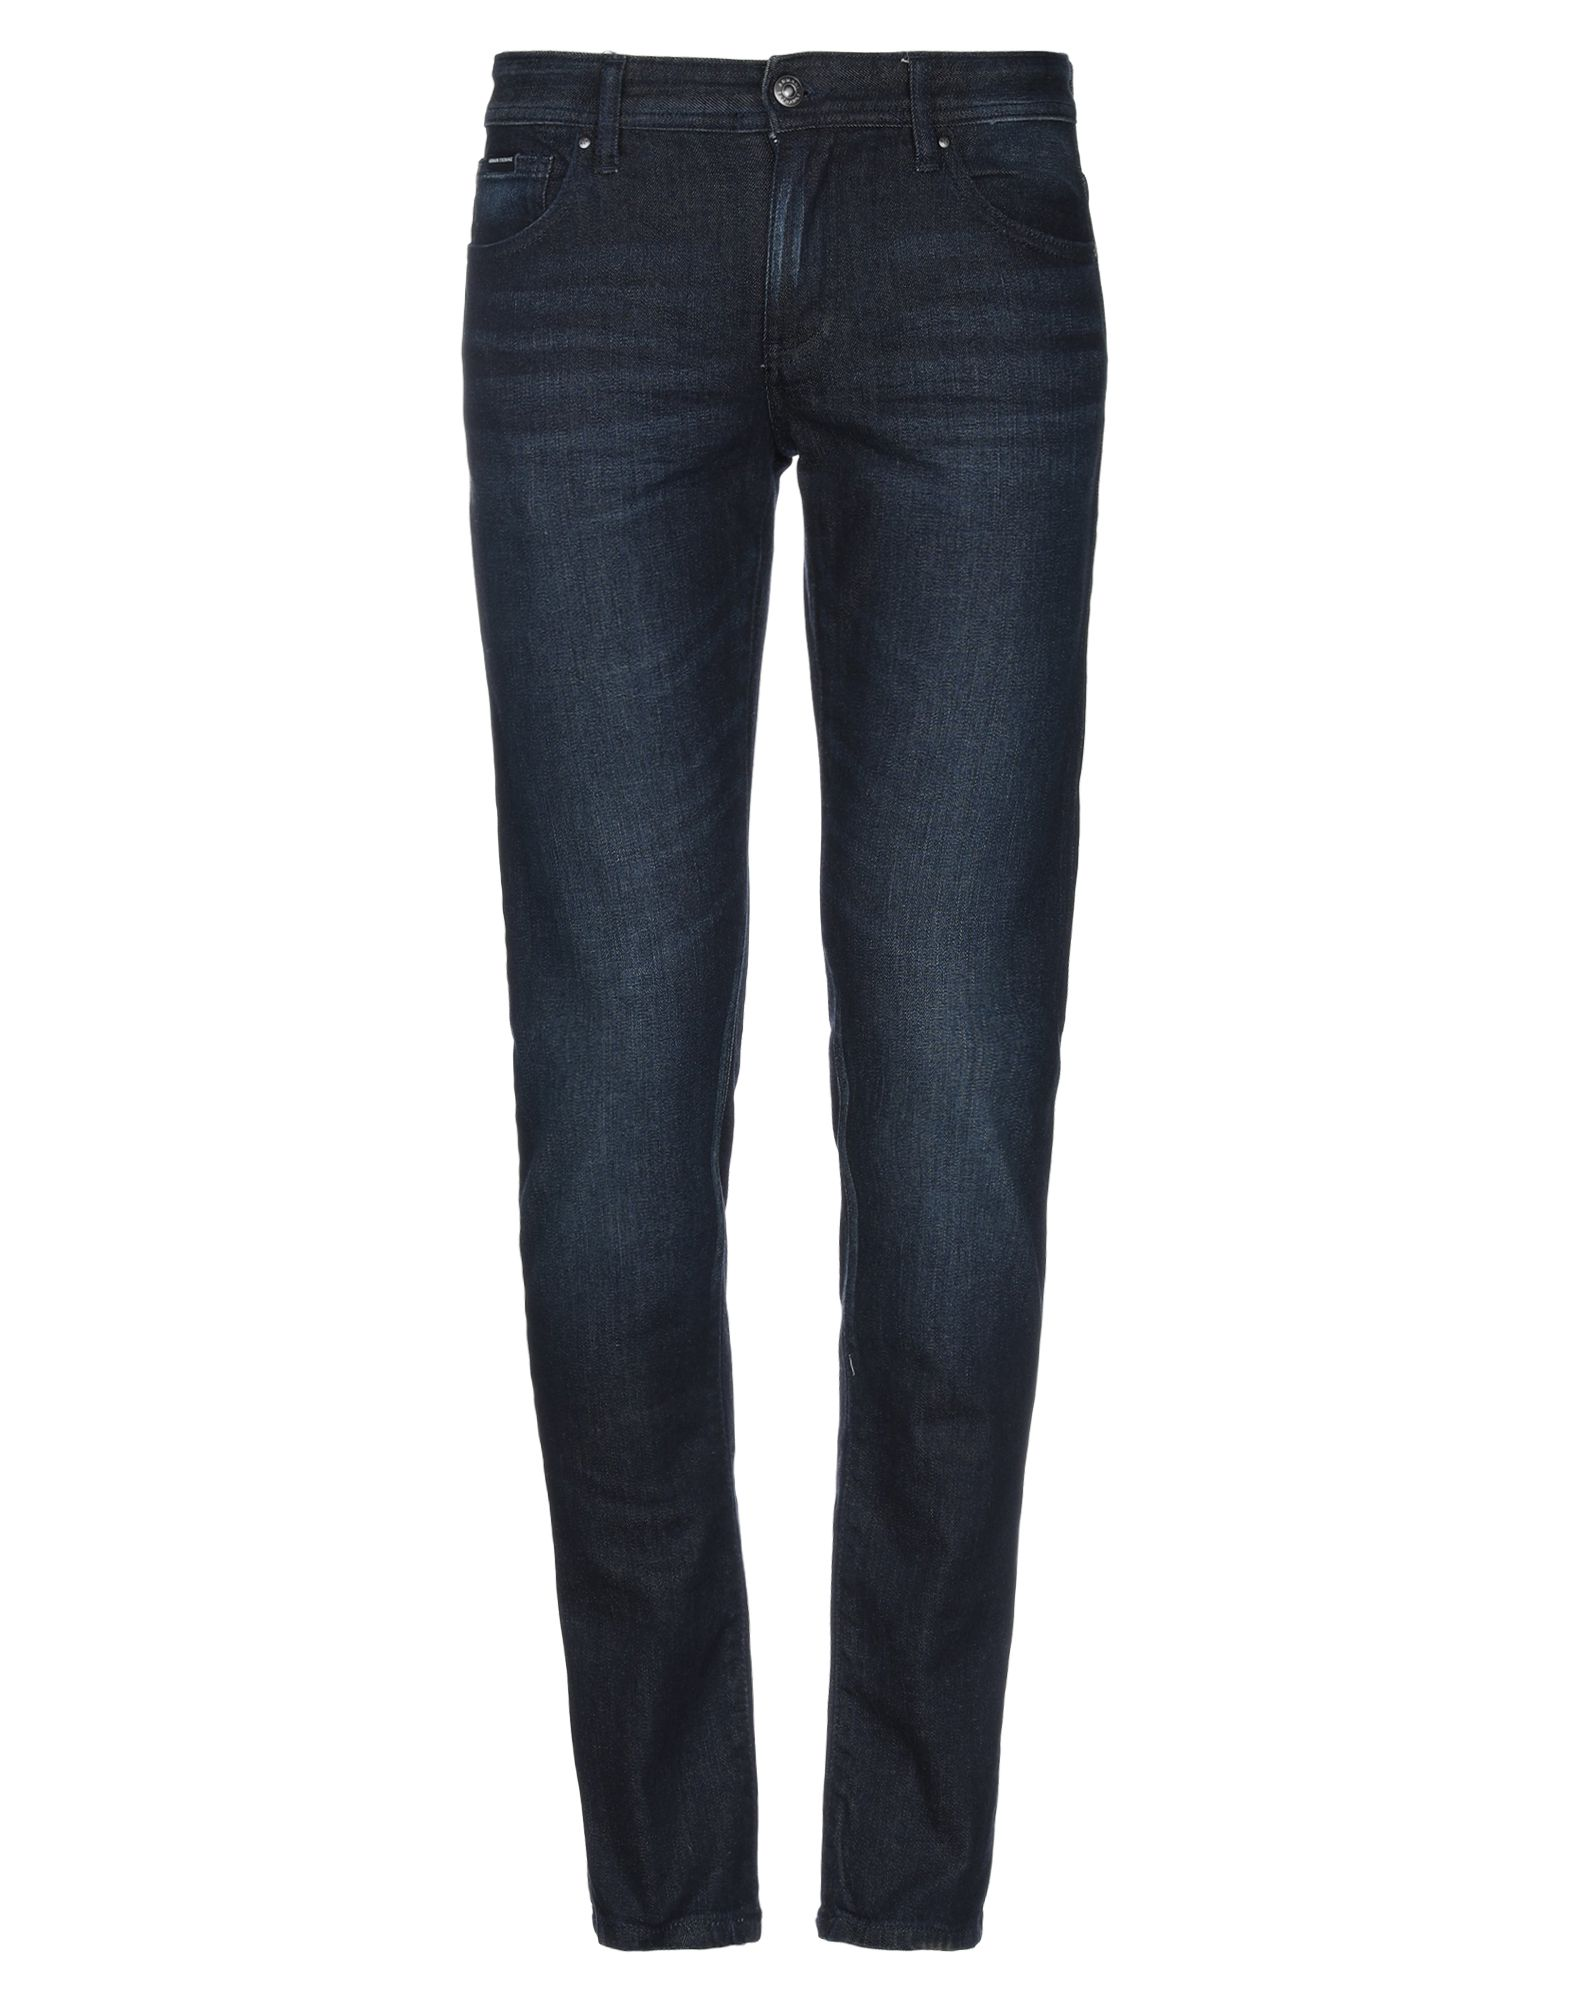 ARMANI EXCHANGE Denim pants - Item 42811989